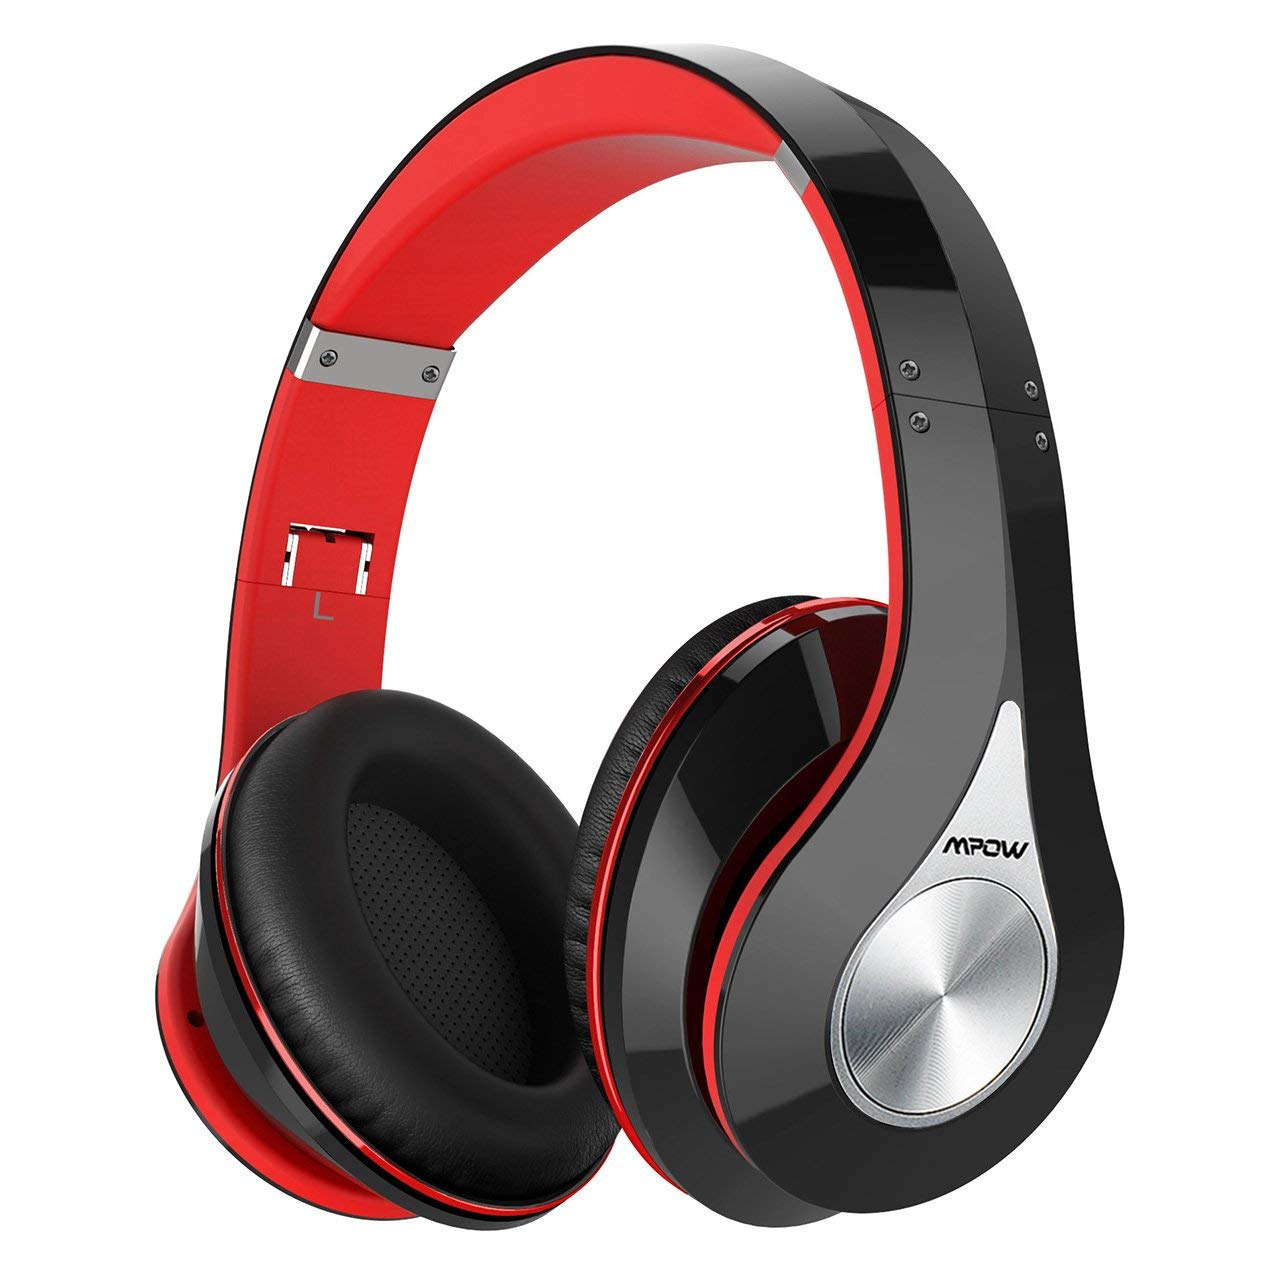 4a216e68f4c Mpow 059 Bluetooth Headphones Over Ear, Hi-Fi Stereo Wireless Headset,  Foldable, Soft Memory-Protein Earmuffs, w/Built-in Mic Wired Mode PC/Cell  Phones/TV